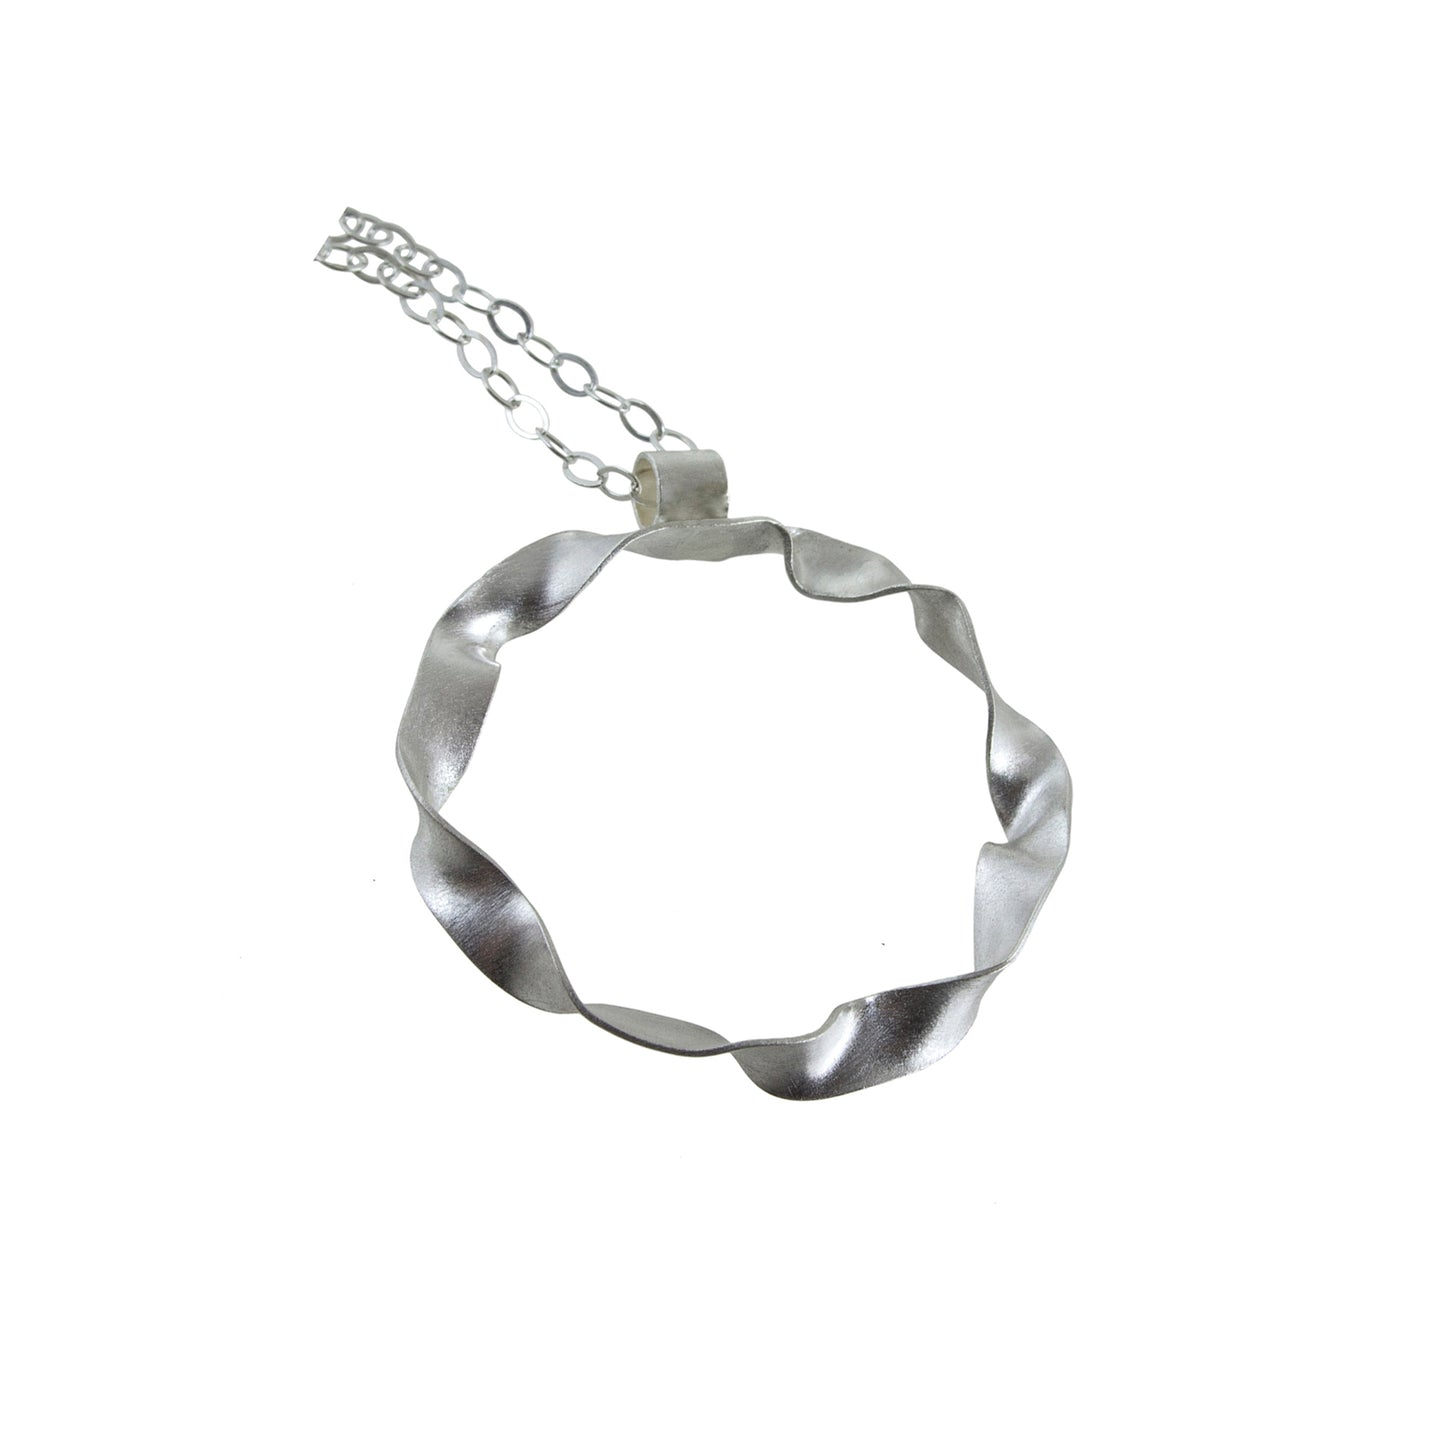 "Eko Wright:(S) Medium size twisted hoop necklace in sterling silver 7/8"" diameter 18"" long"